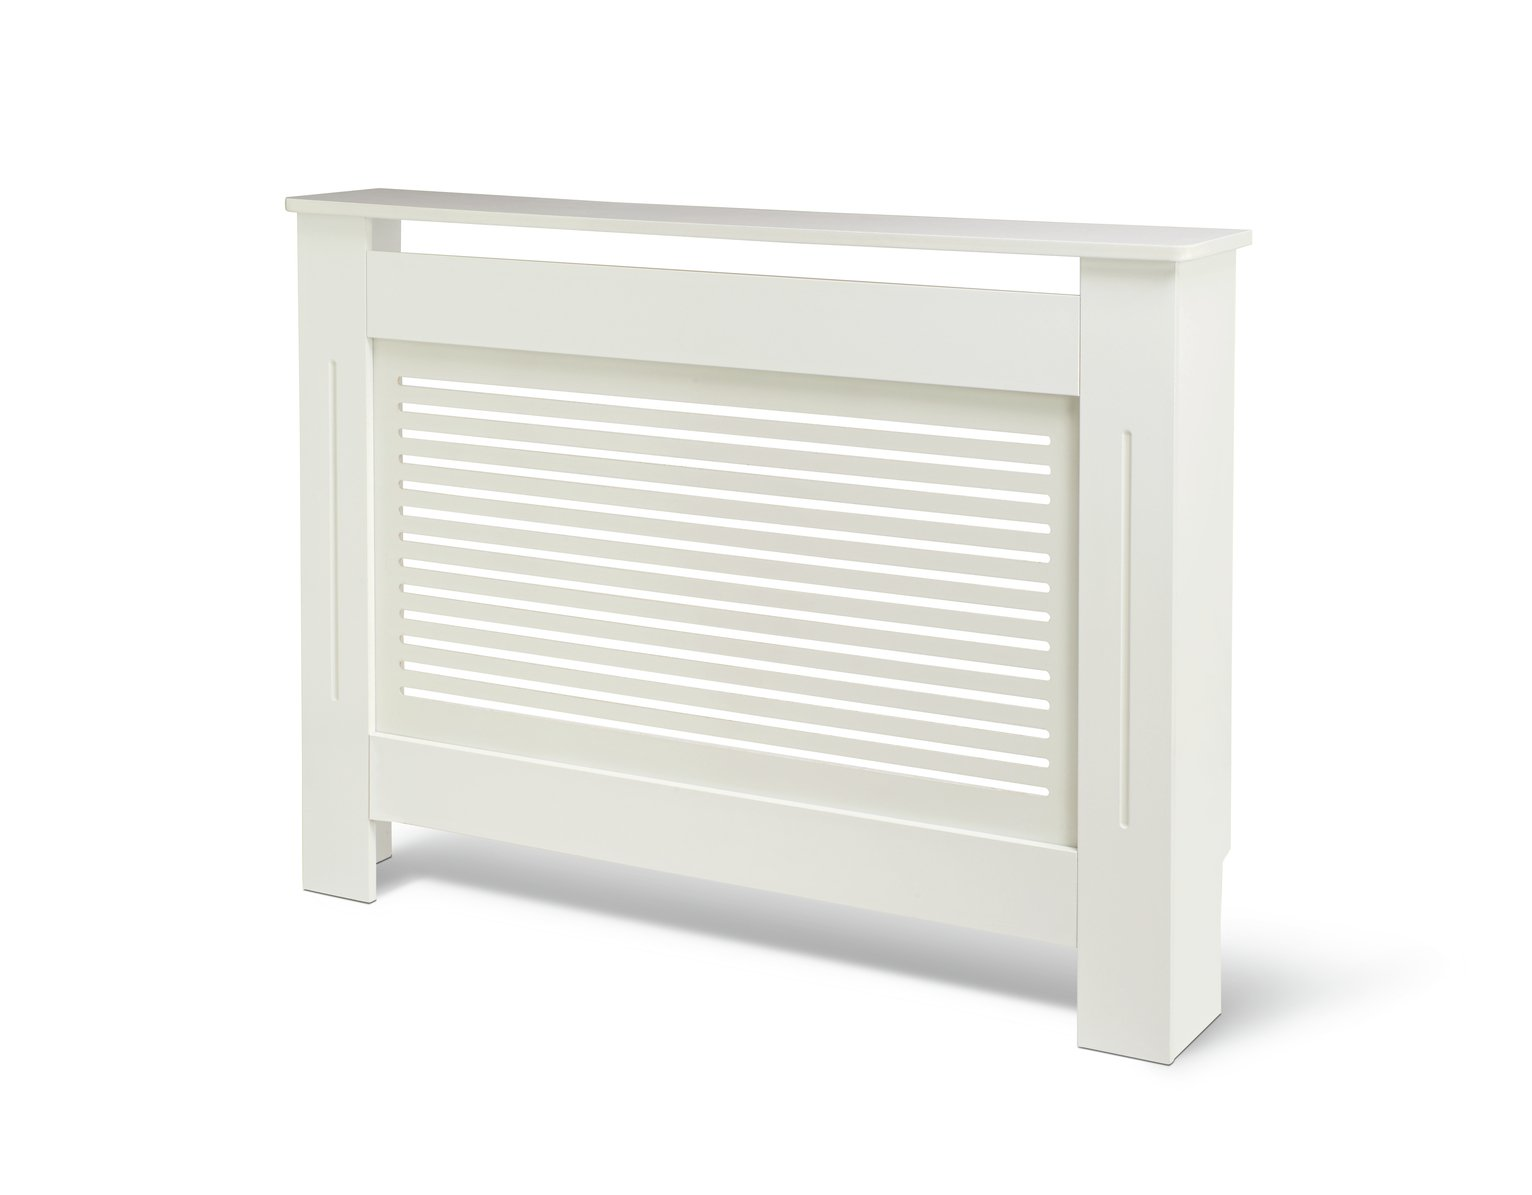 Habitat Austin Small Radiator Cover - White